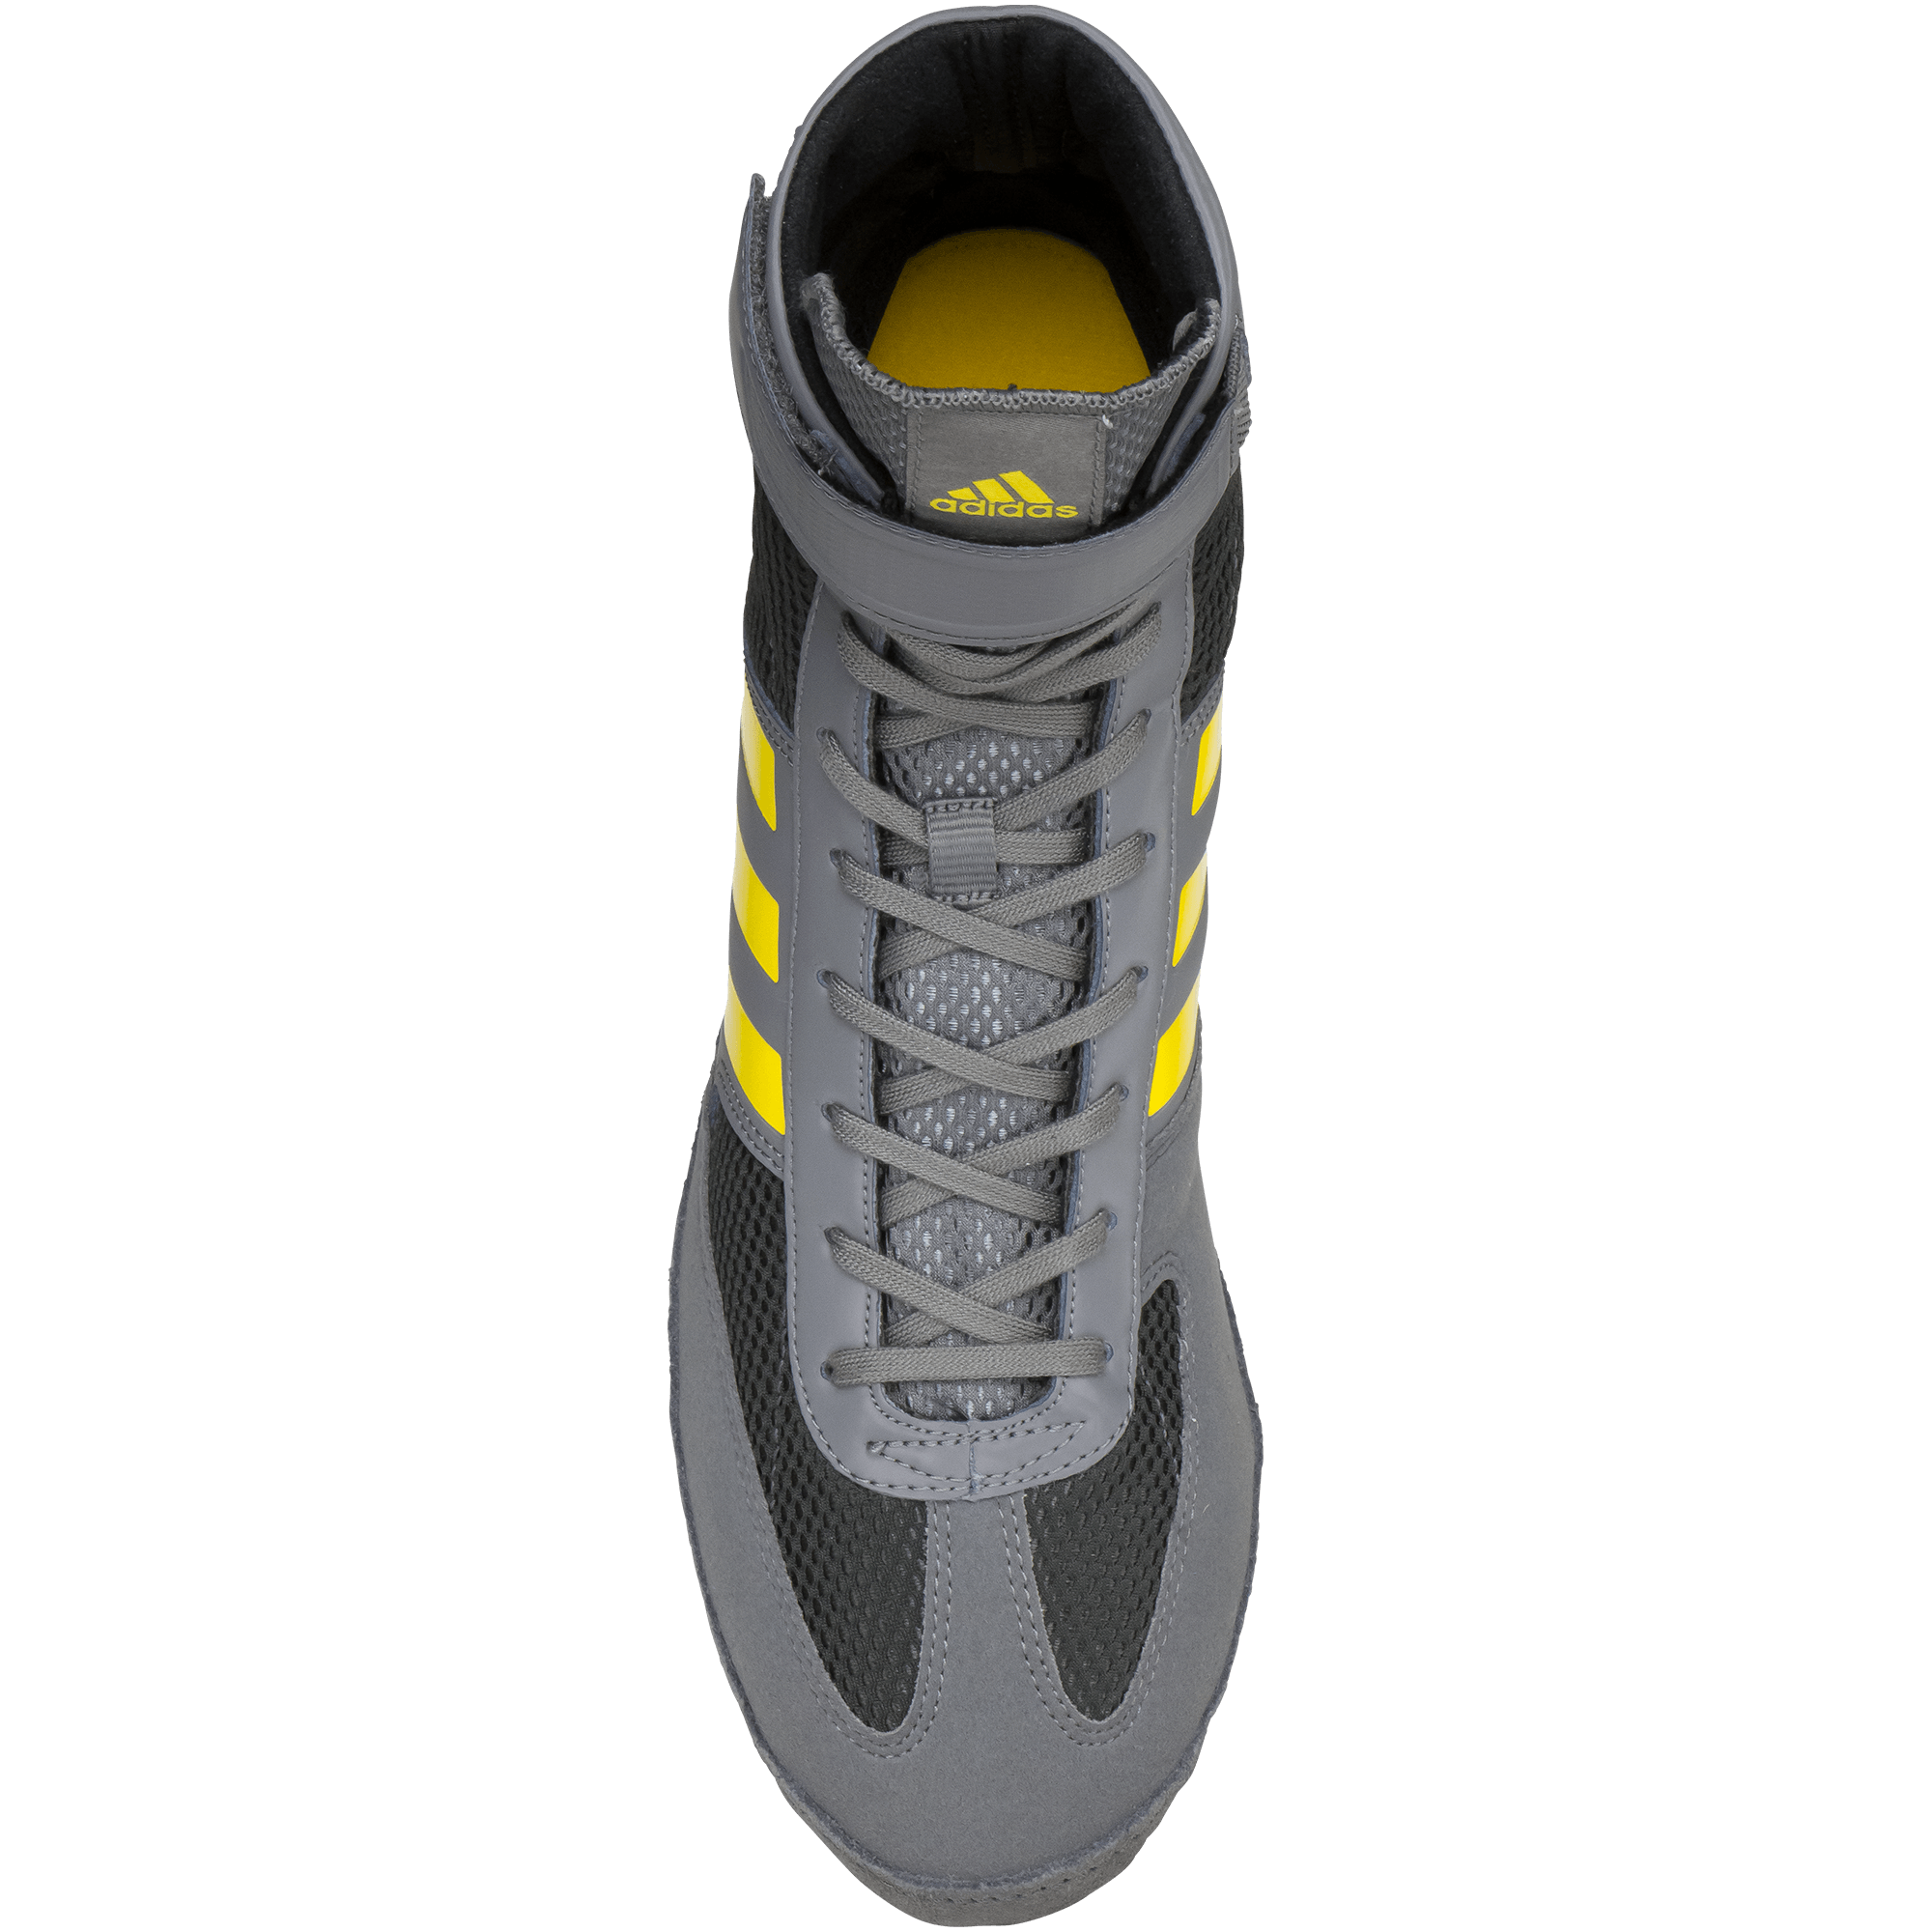 Adidas Combat Speed 5 Grey Yellow Black mainAdidas Combat Speed 5 Grey  Yellow Black insideAdidas Combat Speed 5 Grey Yellow Black frontAdidas  Combat Speed 5 ... f1a73253d